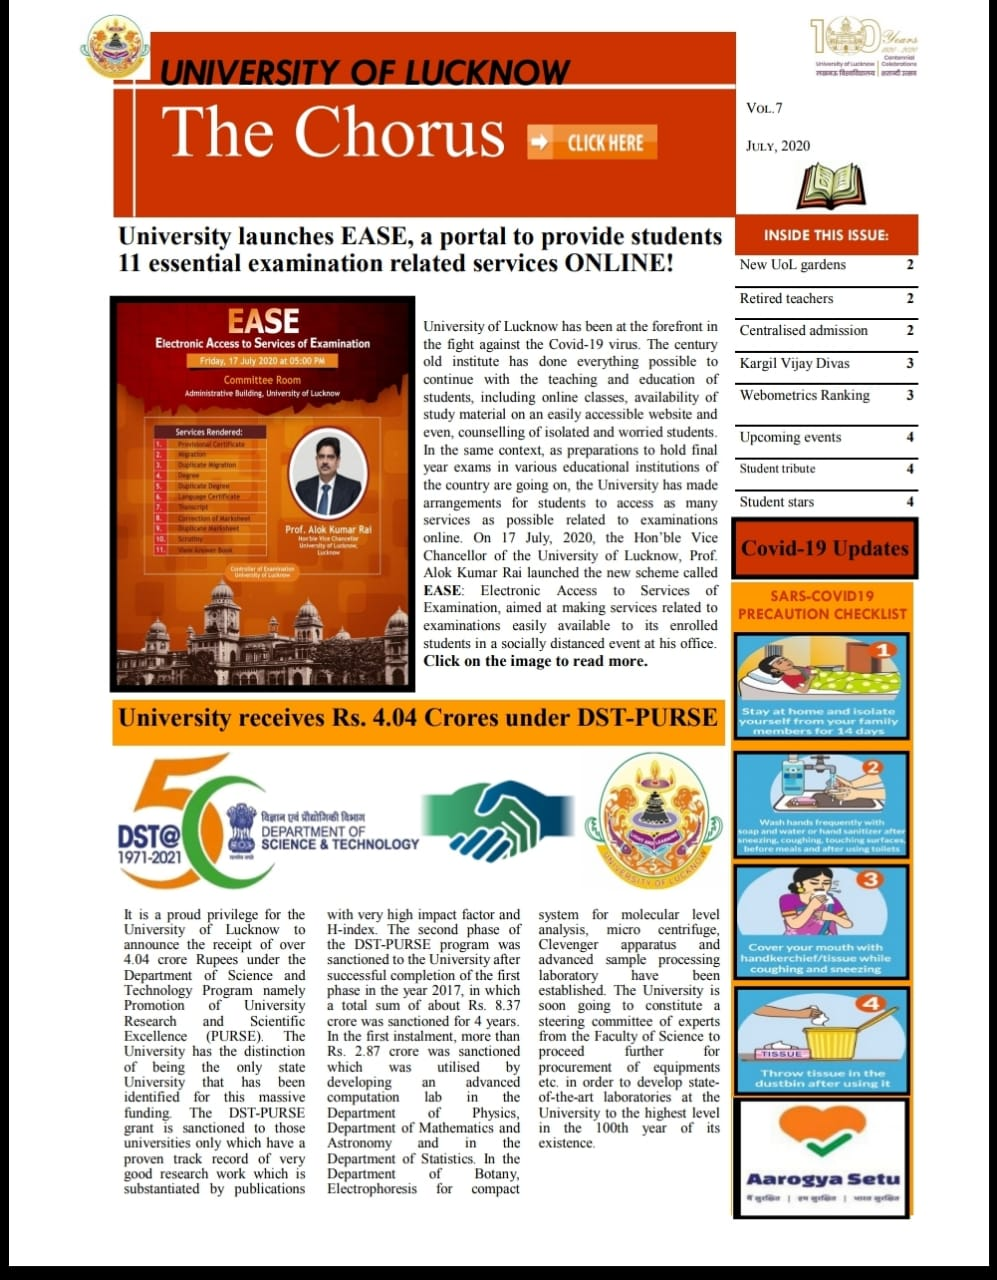 July issue of The Chorus, University of Lucknow